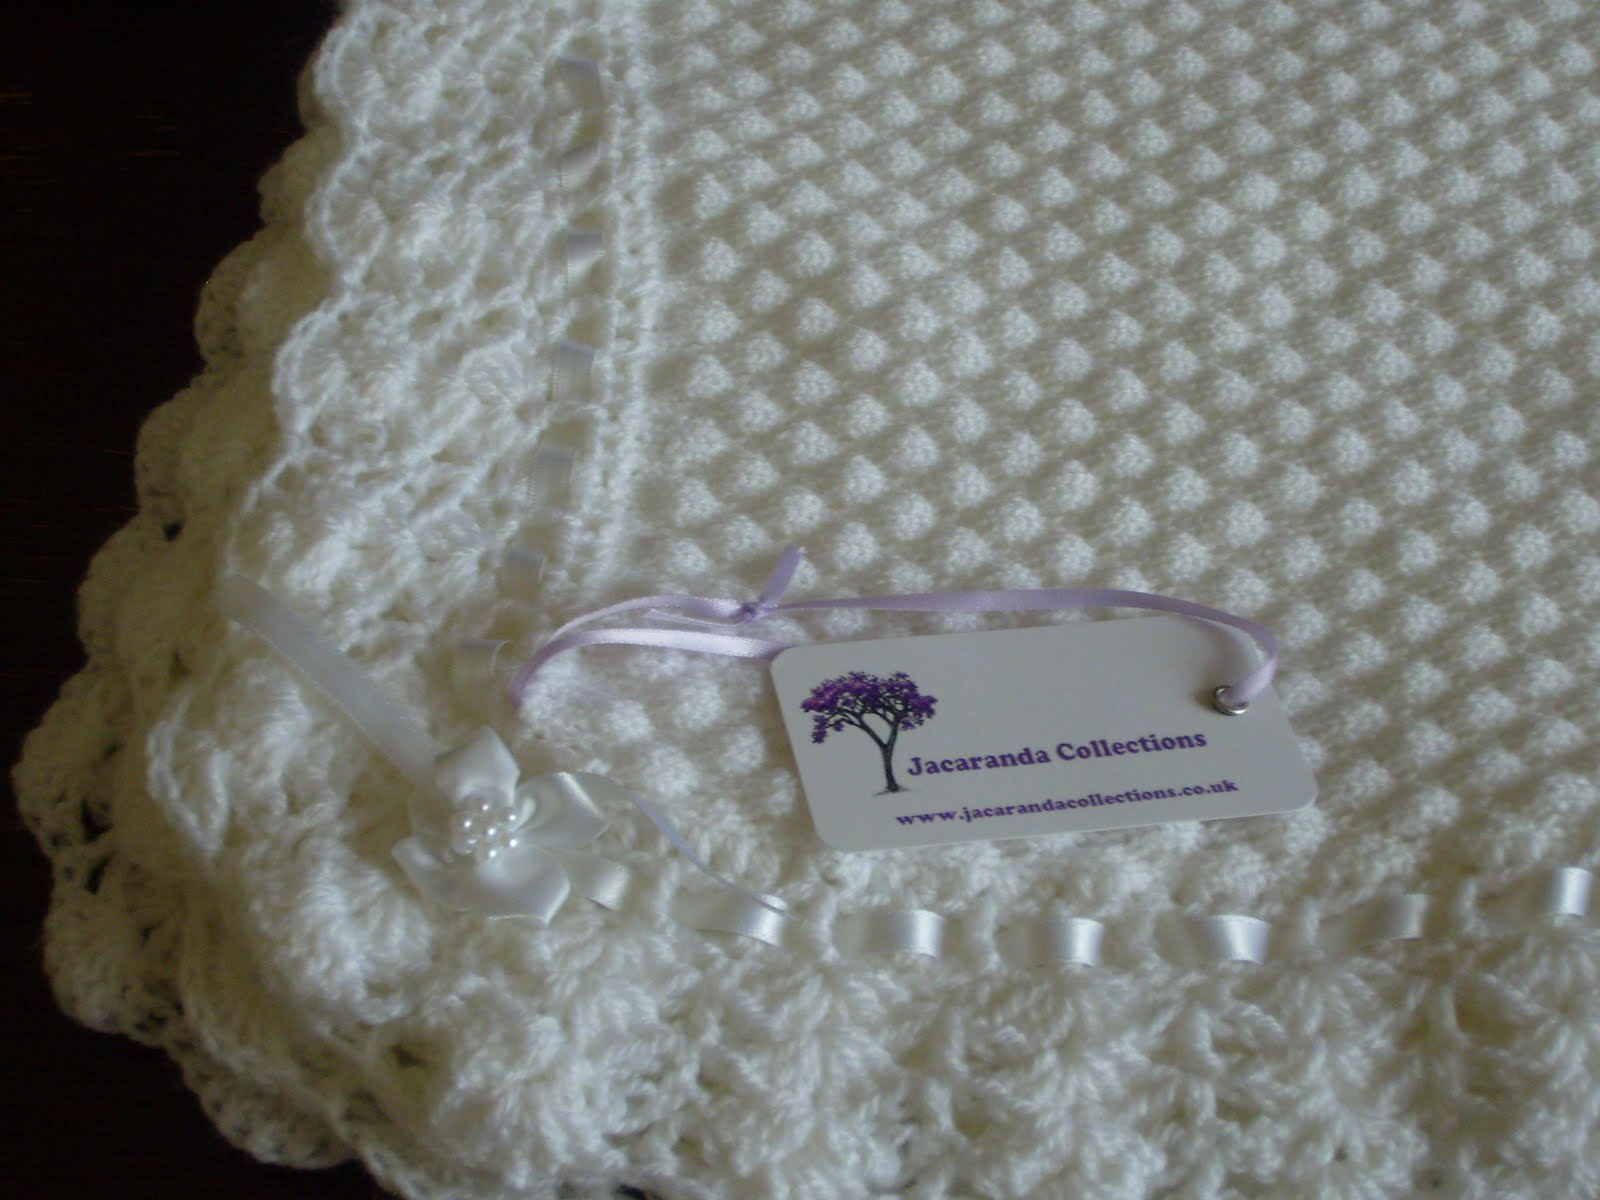 Crocheting Edges Of Knitting : Jacaranda Collections: Machine knitted tuck blanket with crochet edge